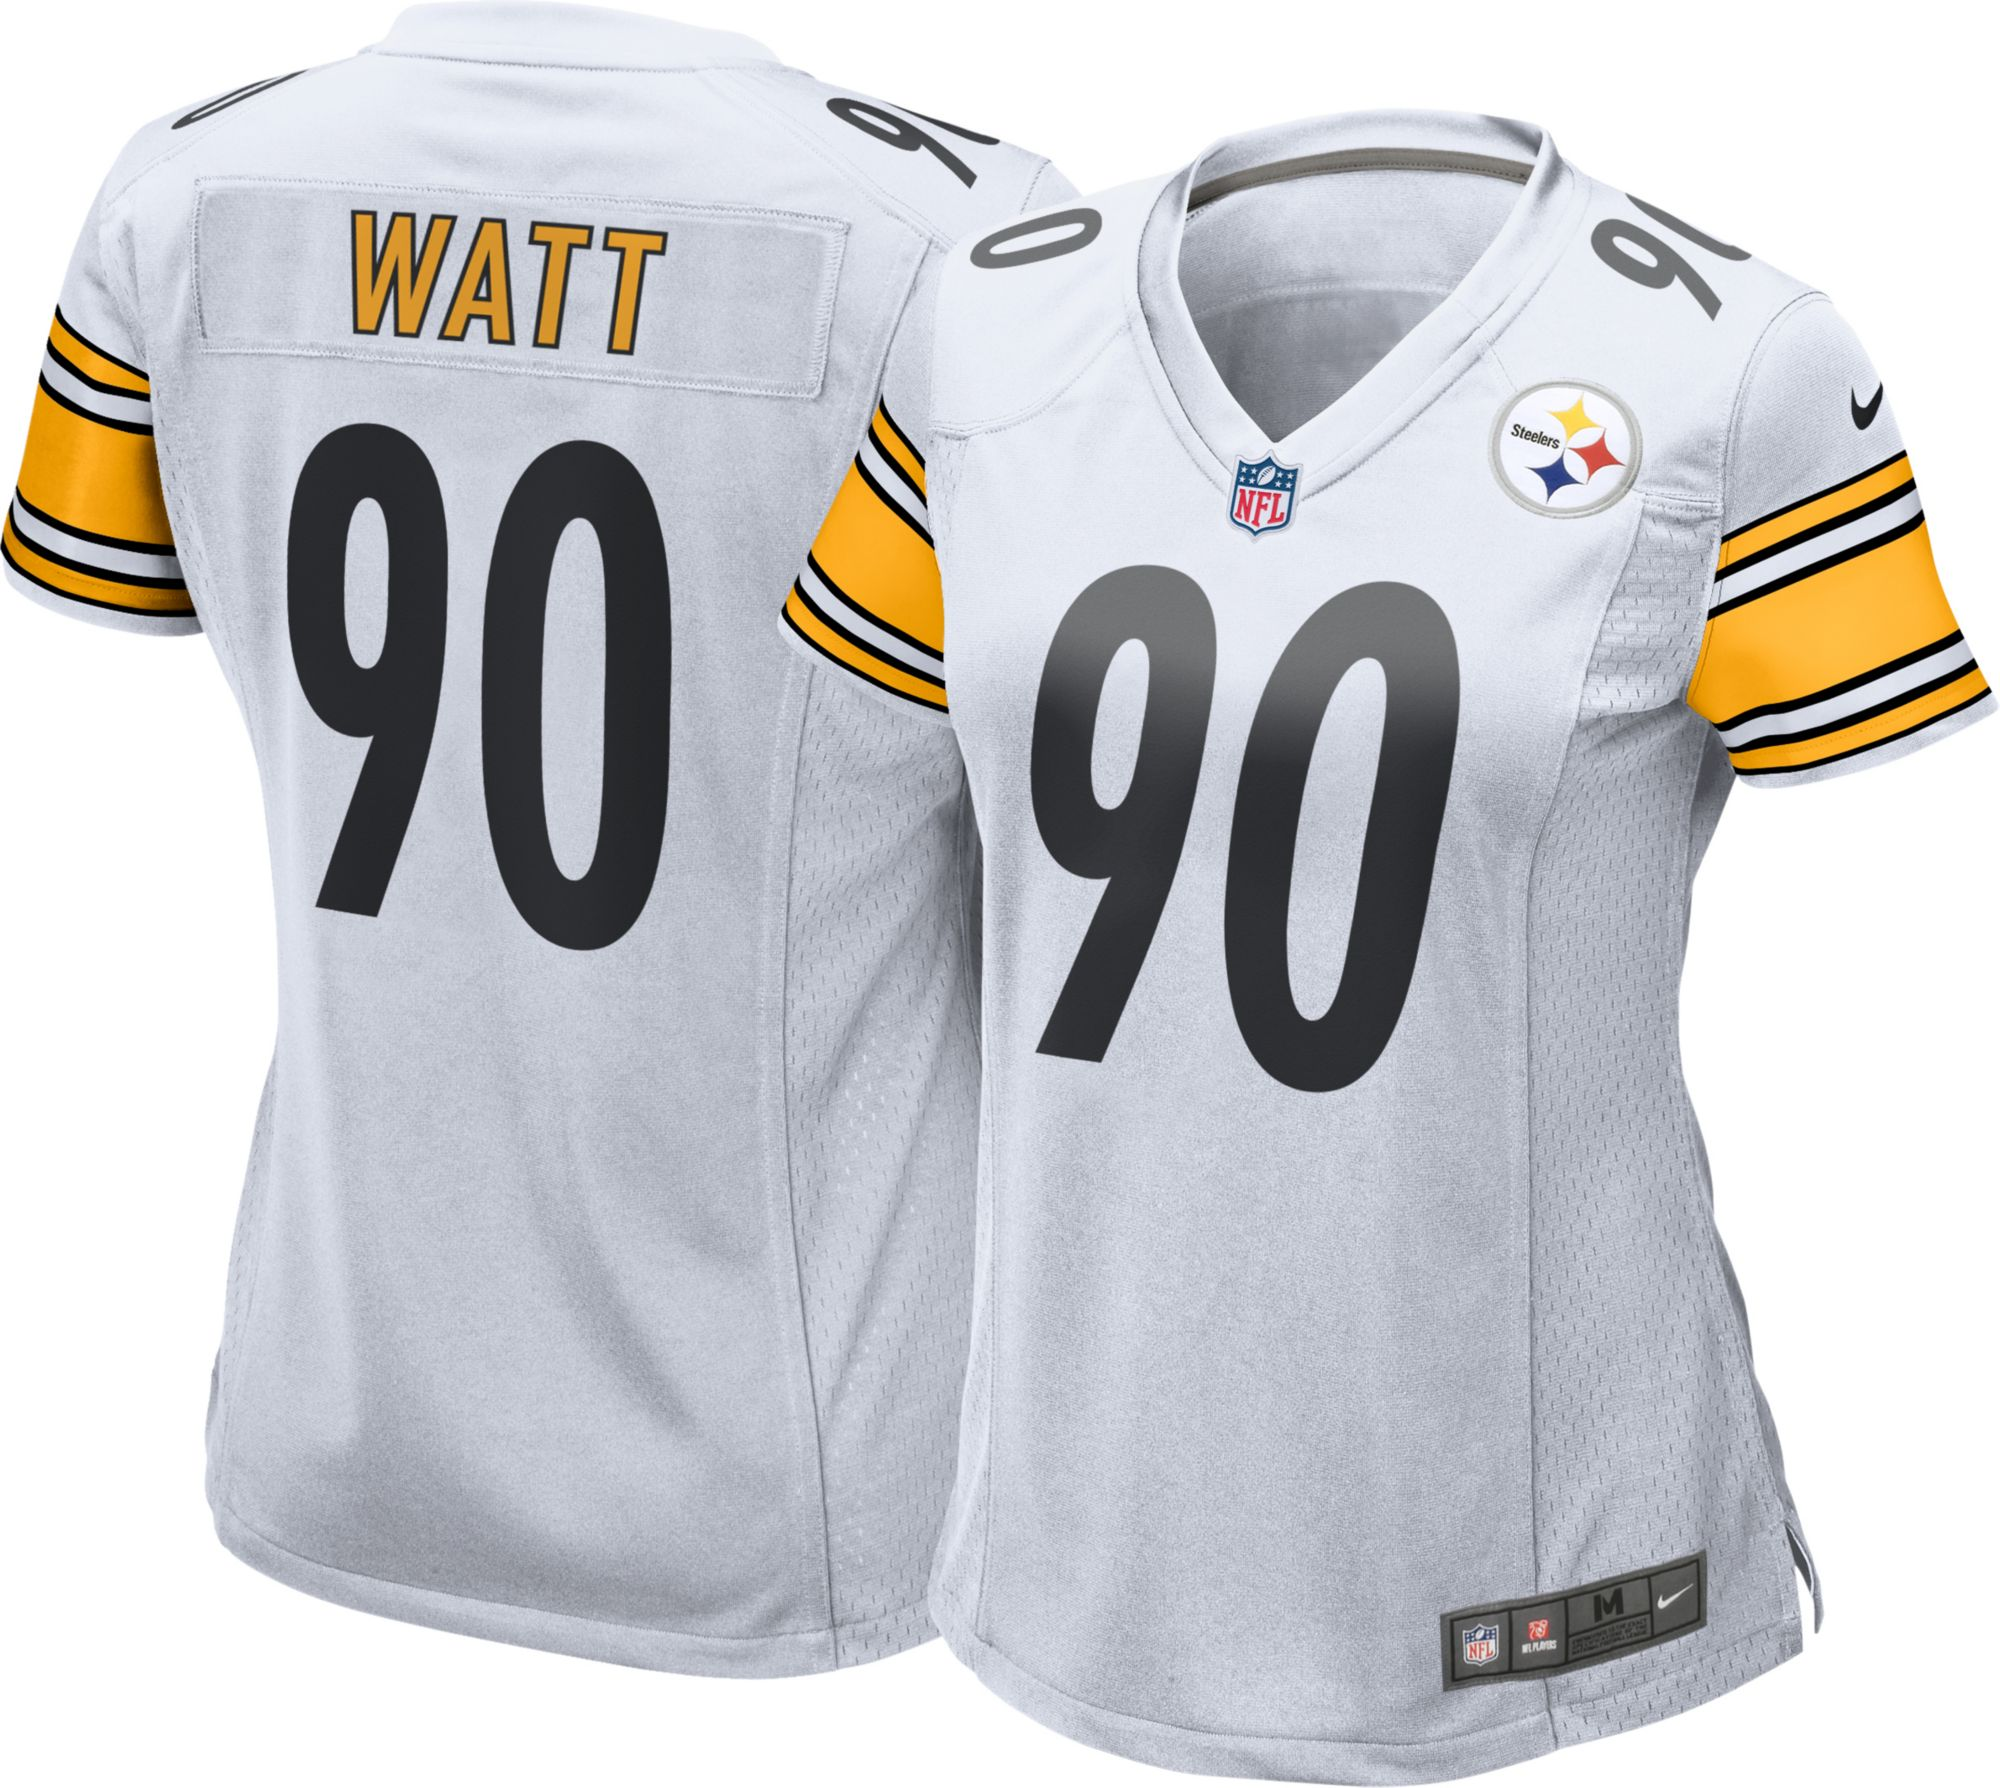 d23a58ca162 ... Men Nike Womens Away Game Jersey Pittsburgh Steelers T.J. Watt 9 Youth  2017 NFL Draft Pittsburgh Steelers 90 ...